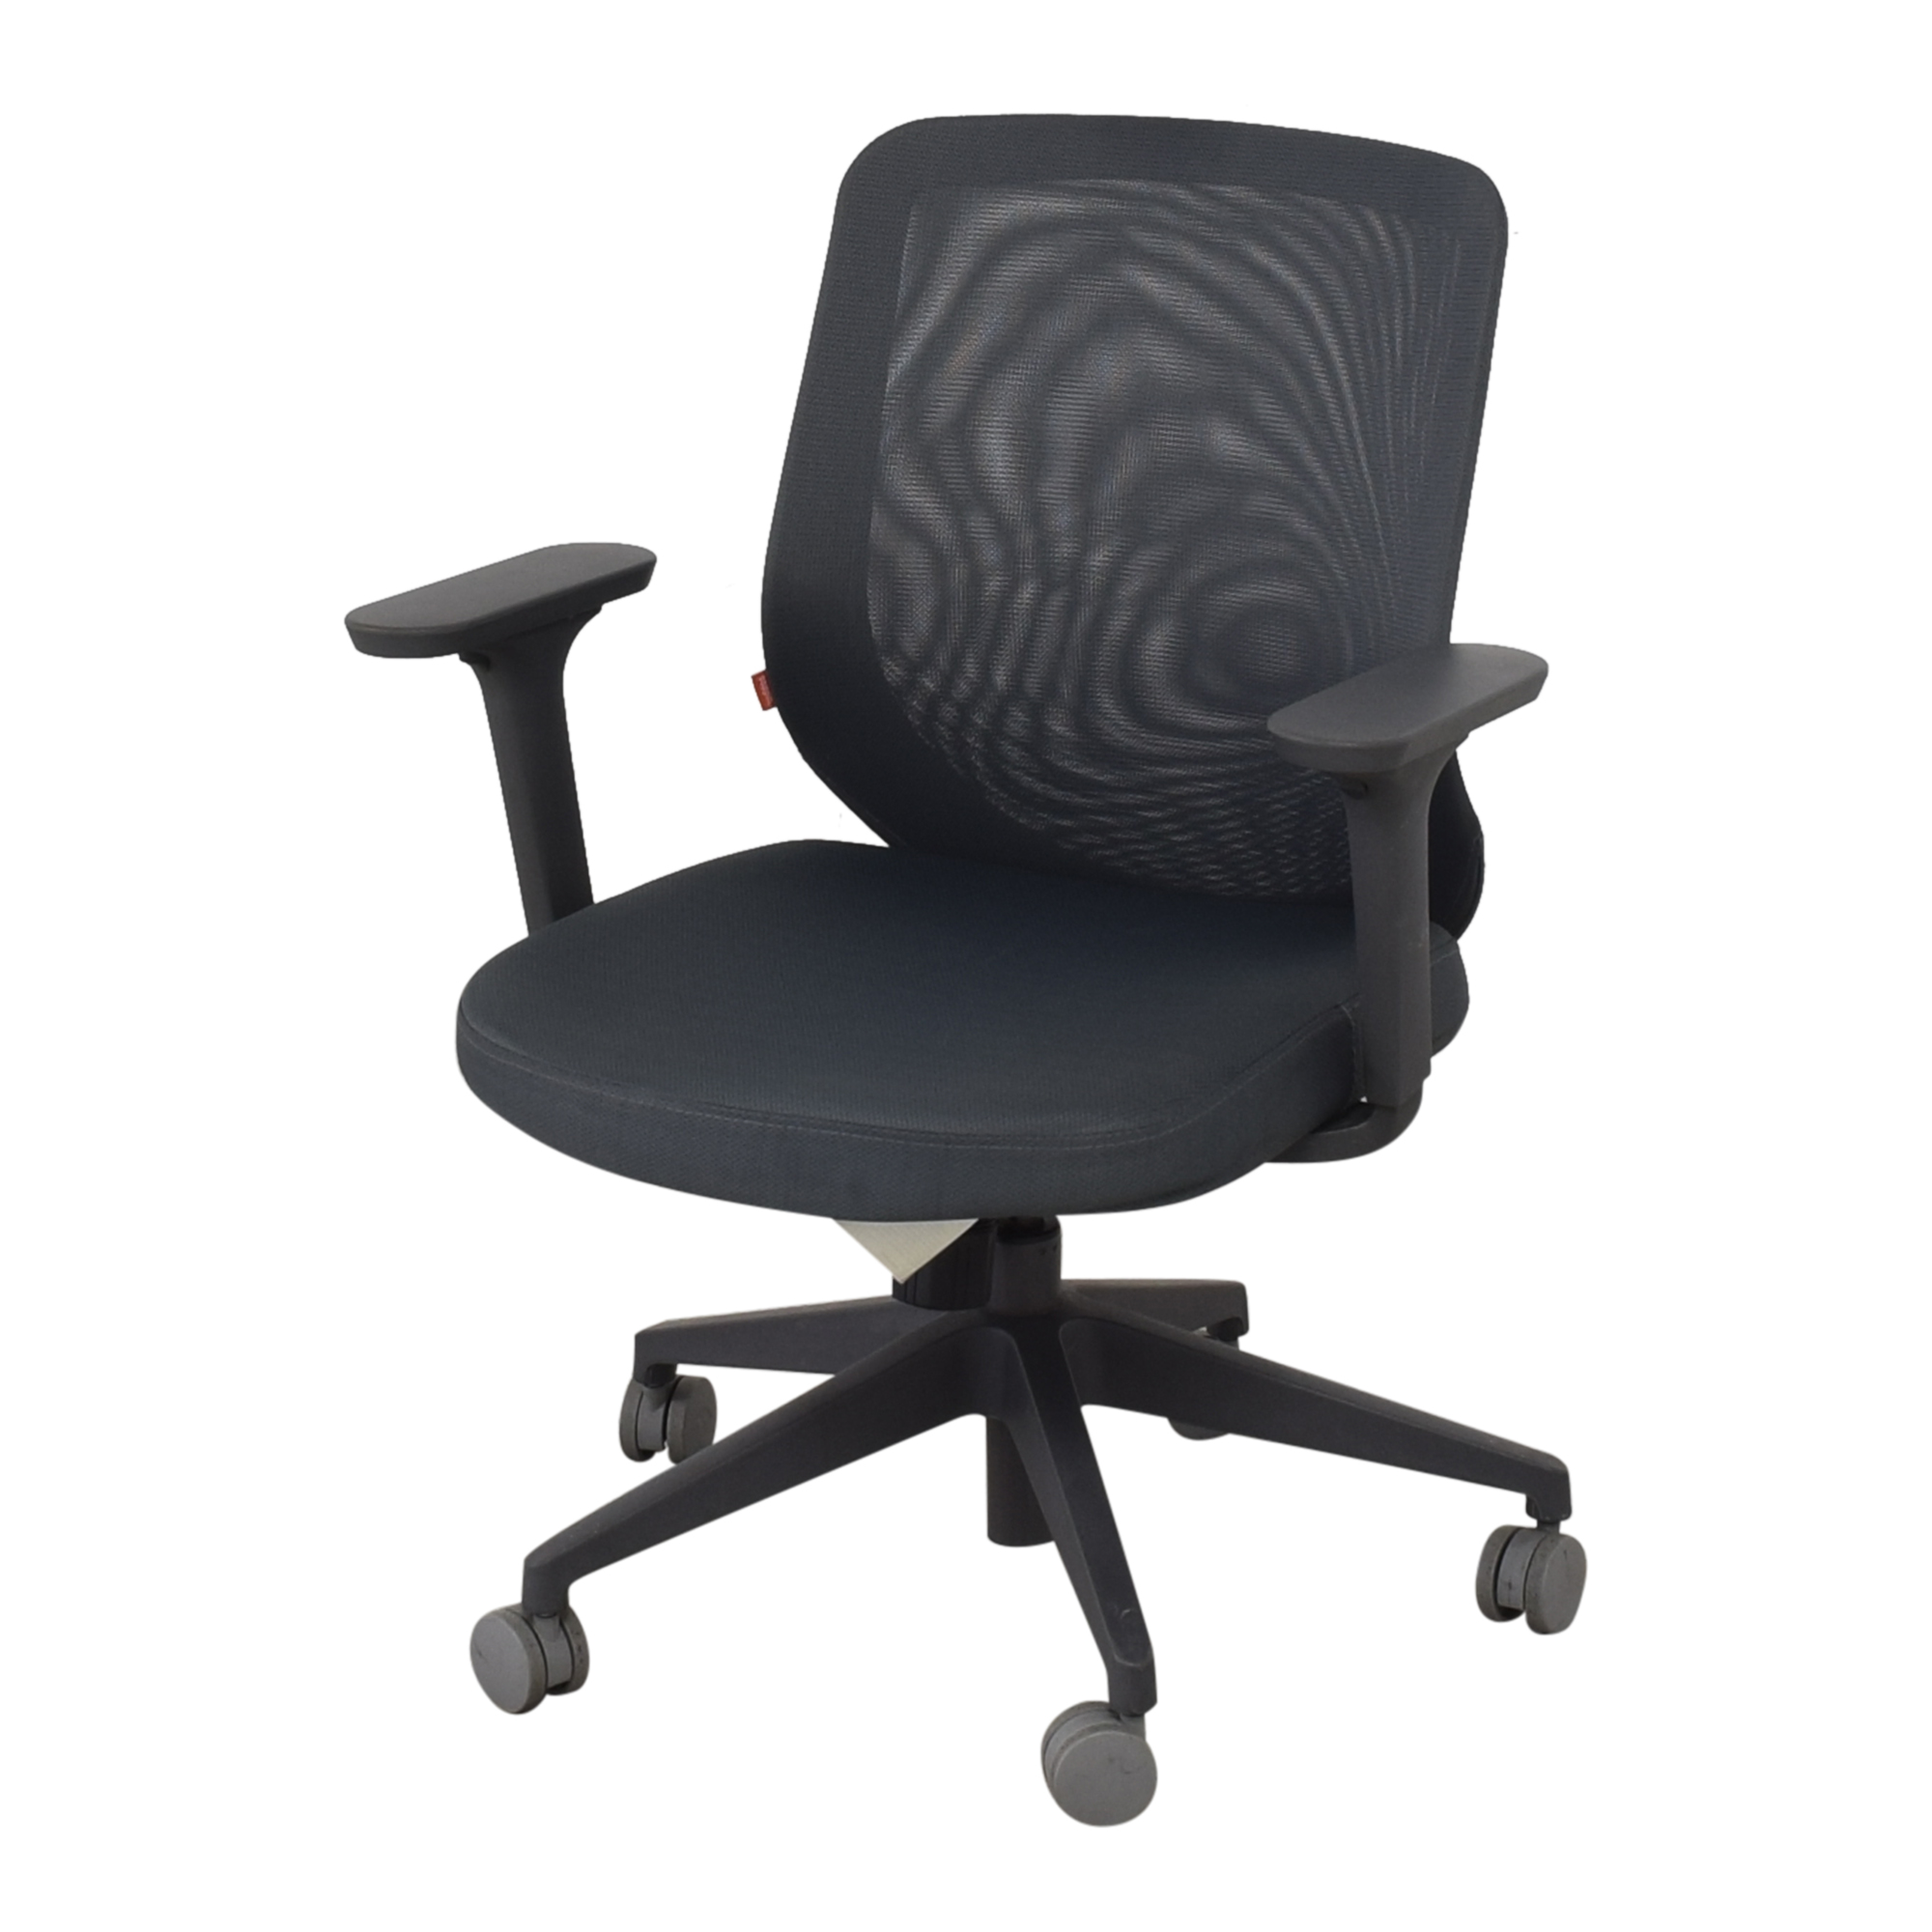 Poppin Poppin Max Task Chair on sale